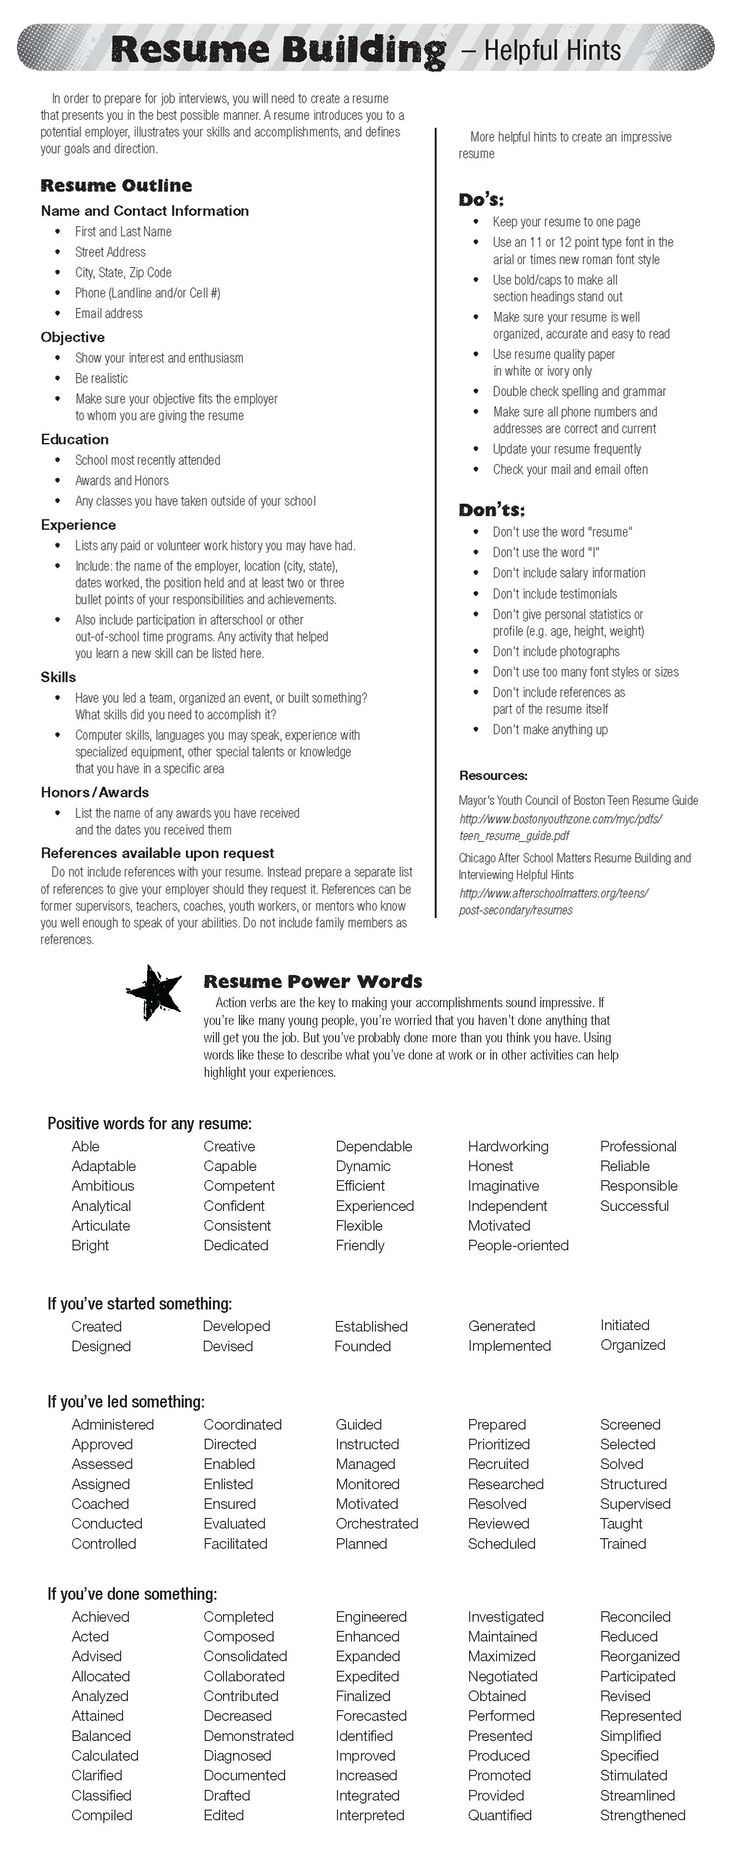 Opposenewapstandardsus  Mesmerizing  Ideas About Resume On Pinterest  Cv Format Resume Cv And  With Gorgeous  Ideas About Resume On Pinterest  Cv Format Resume Cv And Resume Templates With Charming My Personal Resume Also Editorial Assistant Resume In Addition Production Assistant Resume Sample And What Needs To Be In A Resume As Well As Electrical Engineering Resume Examples Additionally Freelance On Resume From Pinterestcom With Opposenewapstandardsus  Gorgeous  Ideas About Resume On Pinterest  Cv Format Resume Cv And  With Charming  Ideas About Resume On Pinterest  Cv Format Resume Cv And Resume Templates And Mesmerizing My Personal Resume Also Editorial Assistant Resume In Addition Production Assistant Resume Sample From Pinterestcom